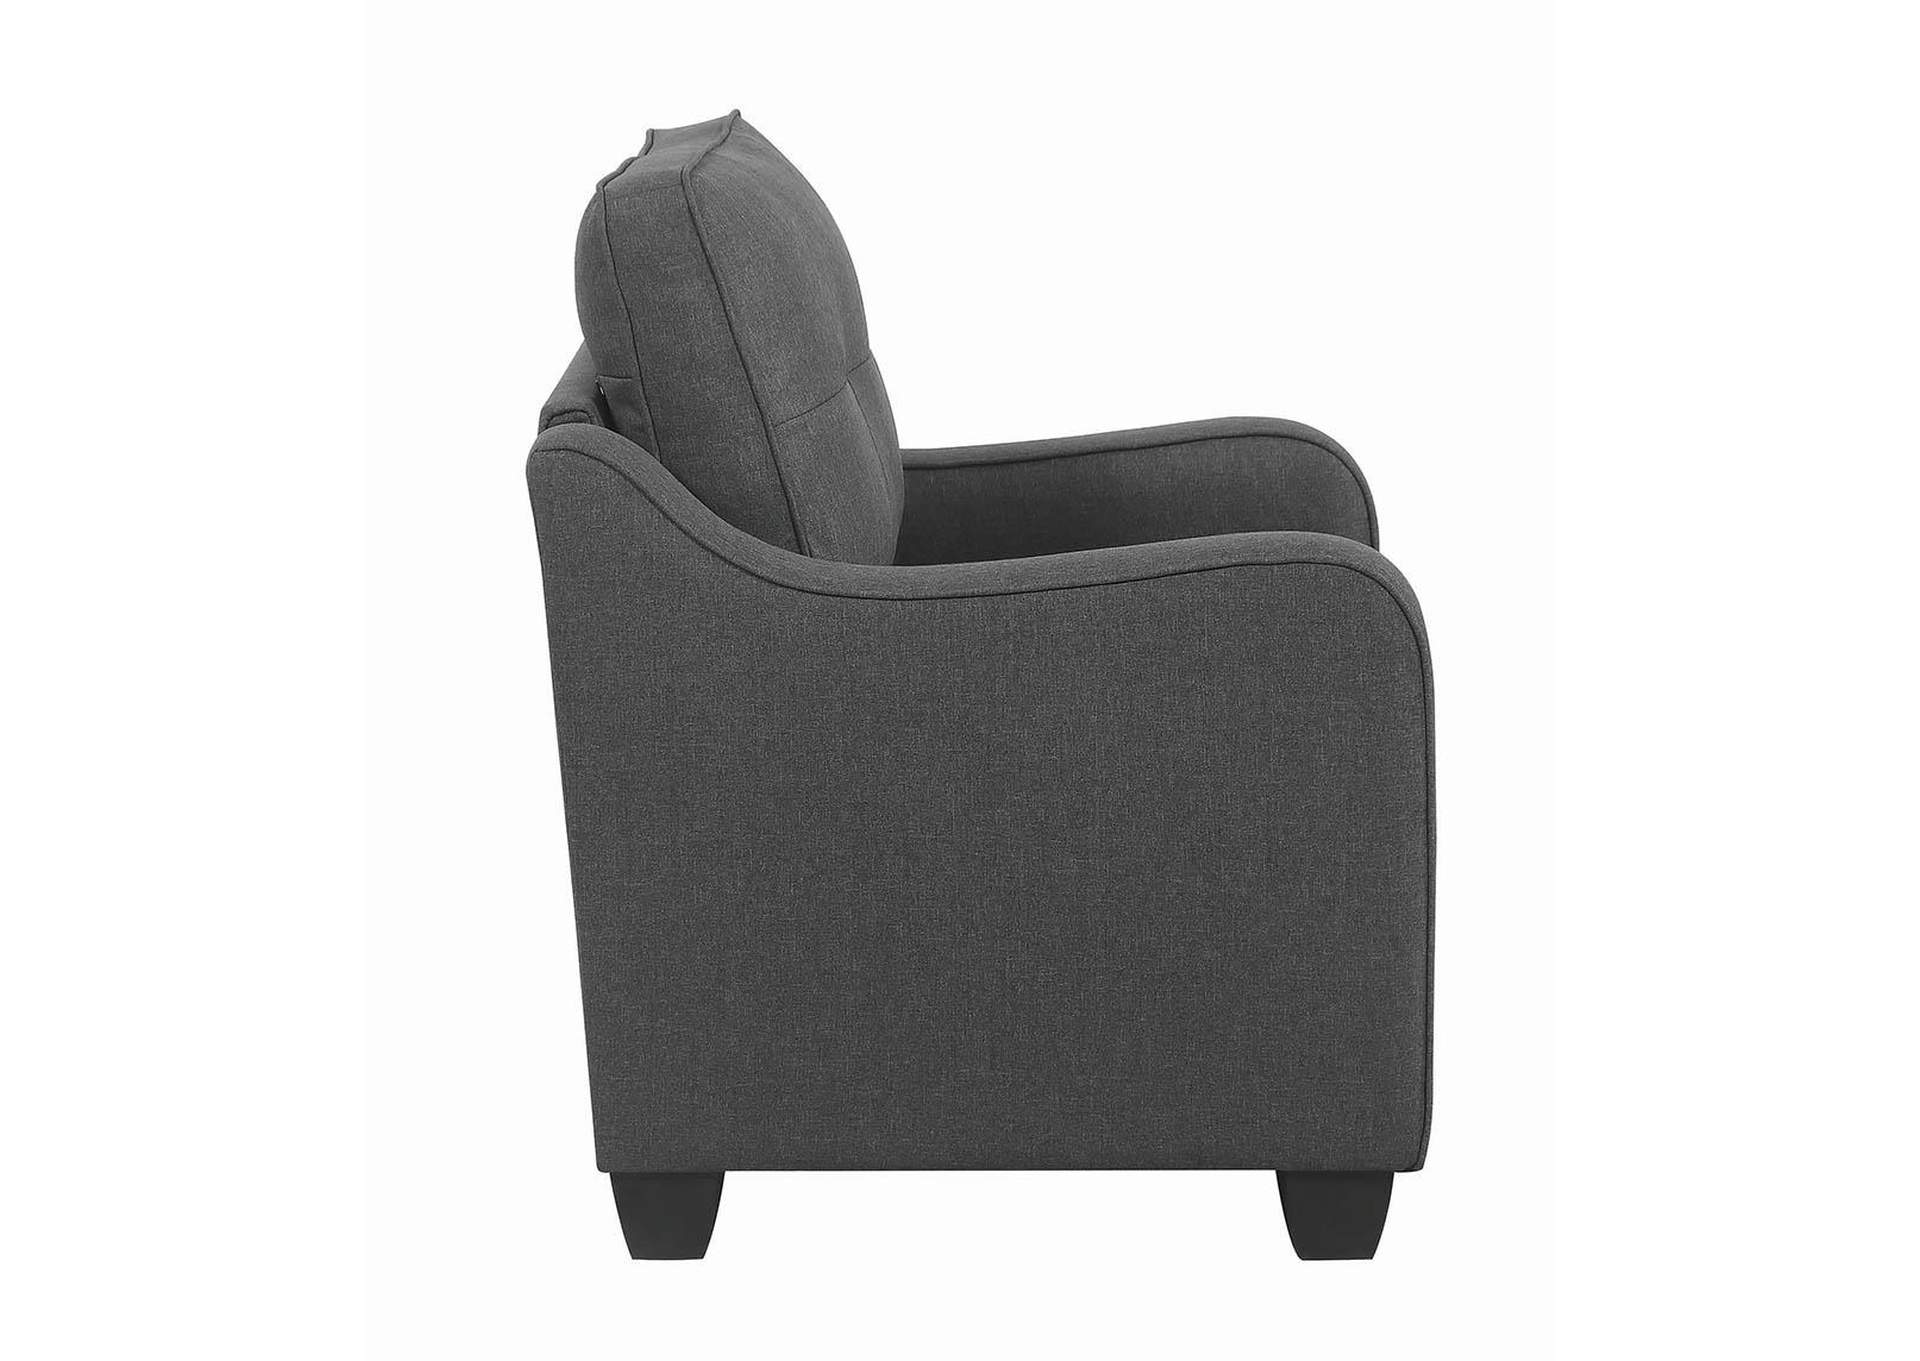 Nicolette Dark Grey Tufted Armchair,Coaster Furniture